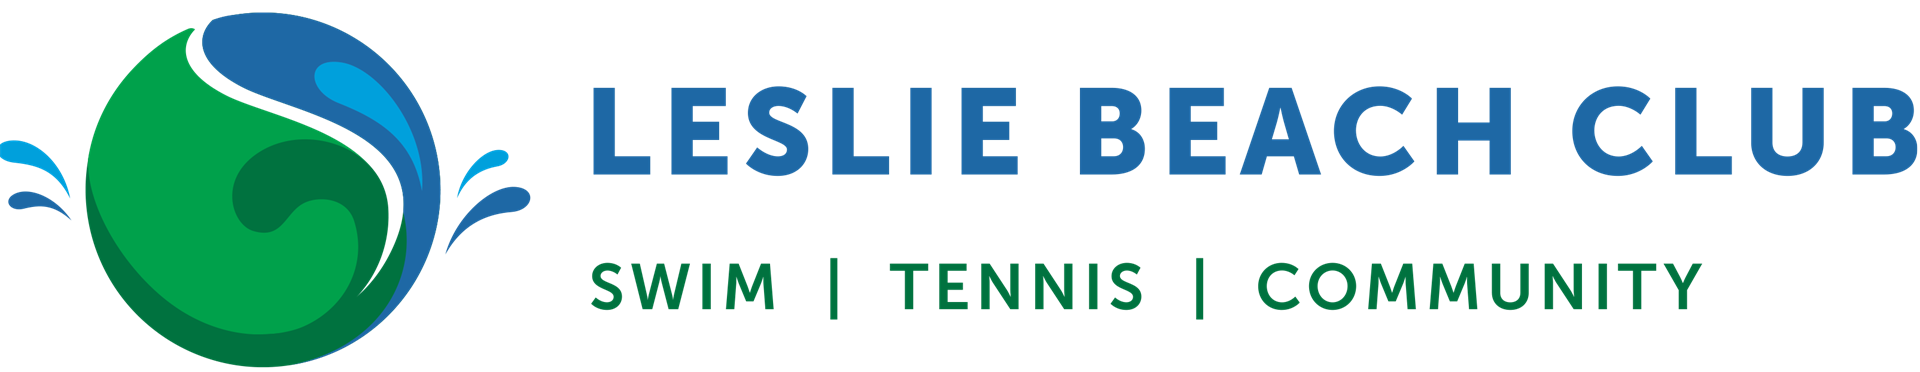 Leslie Beach Club - Swim Tennis Community